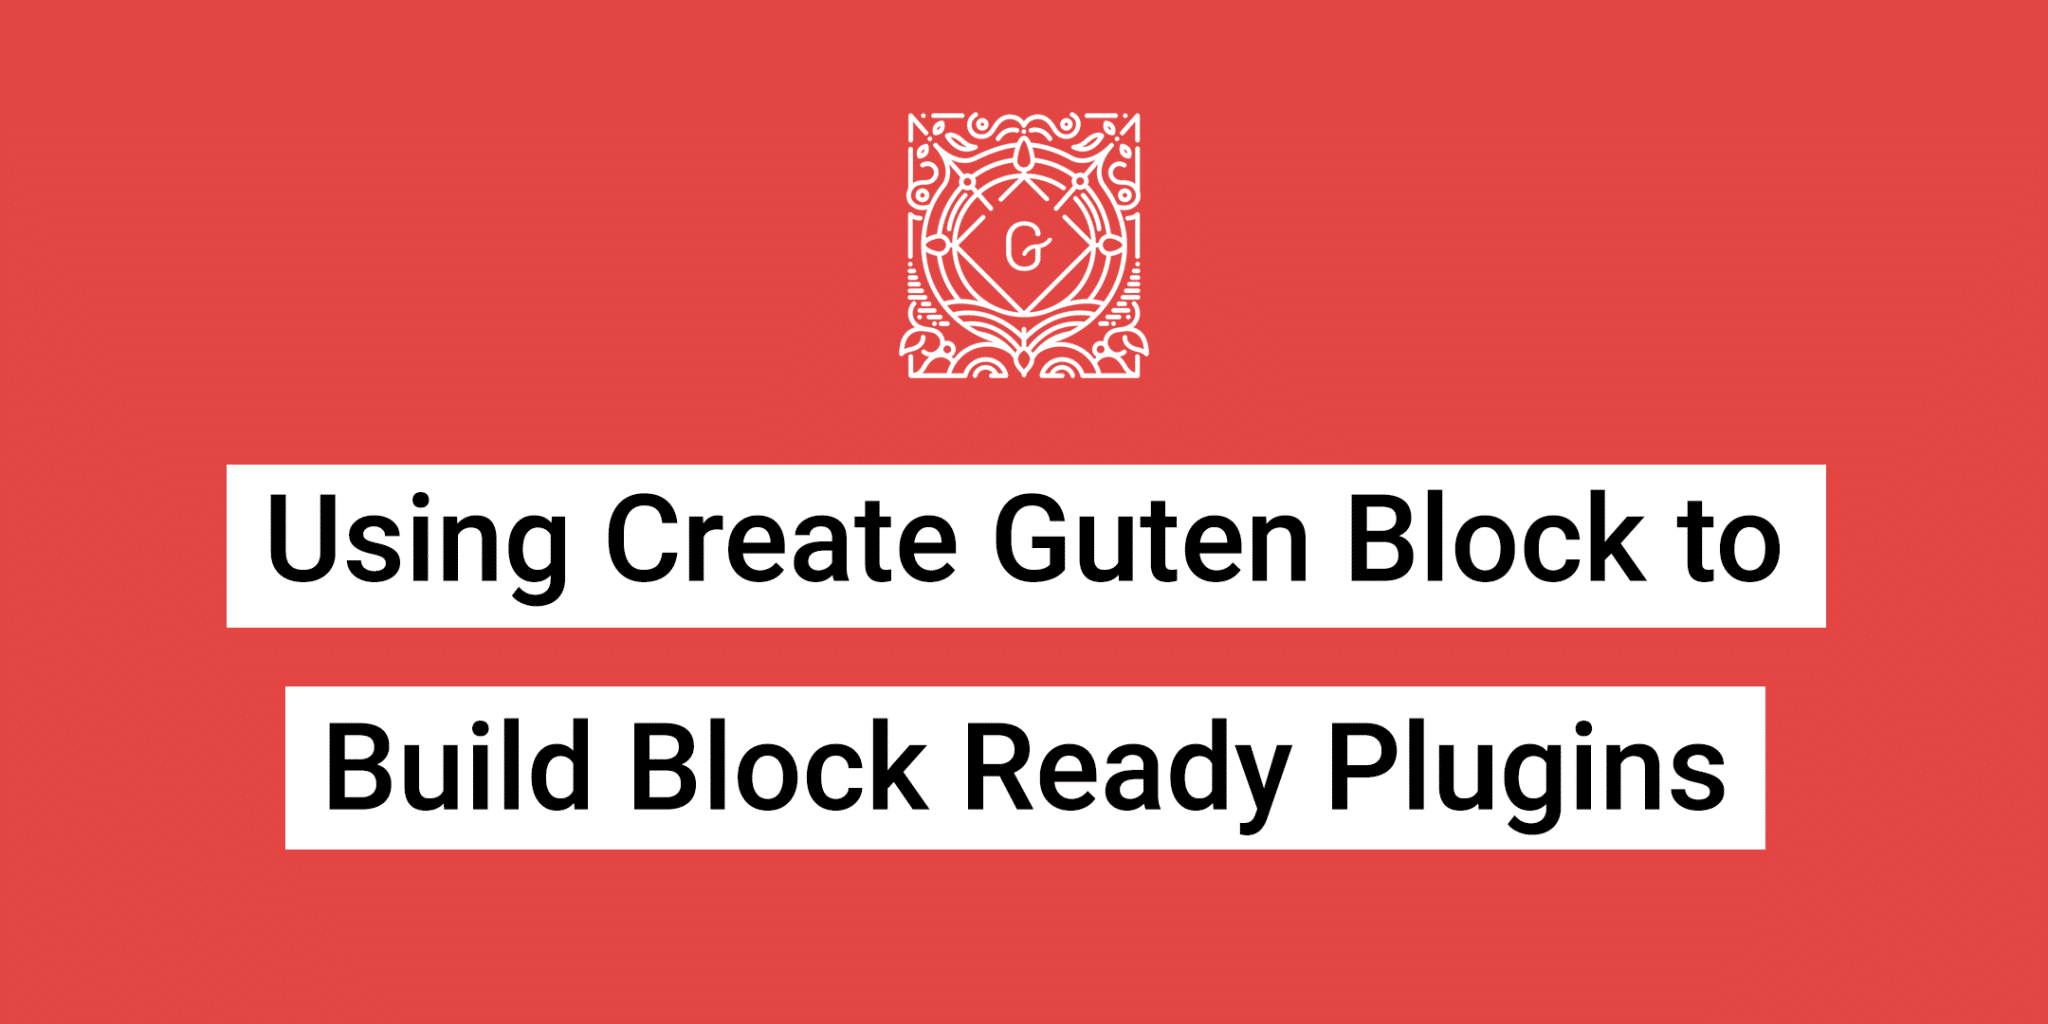 Using Create Guten Block to Build Block Ready Plugins